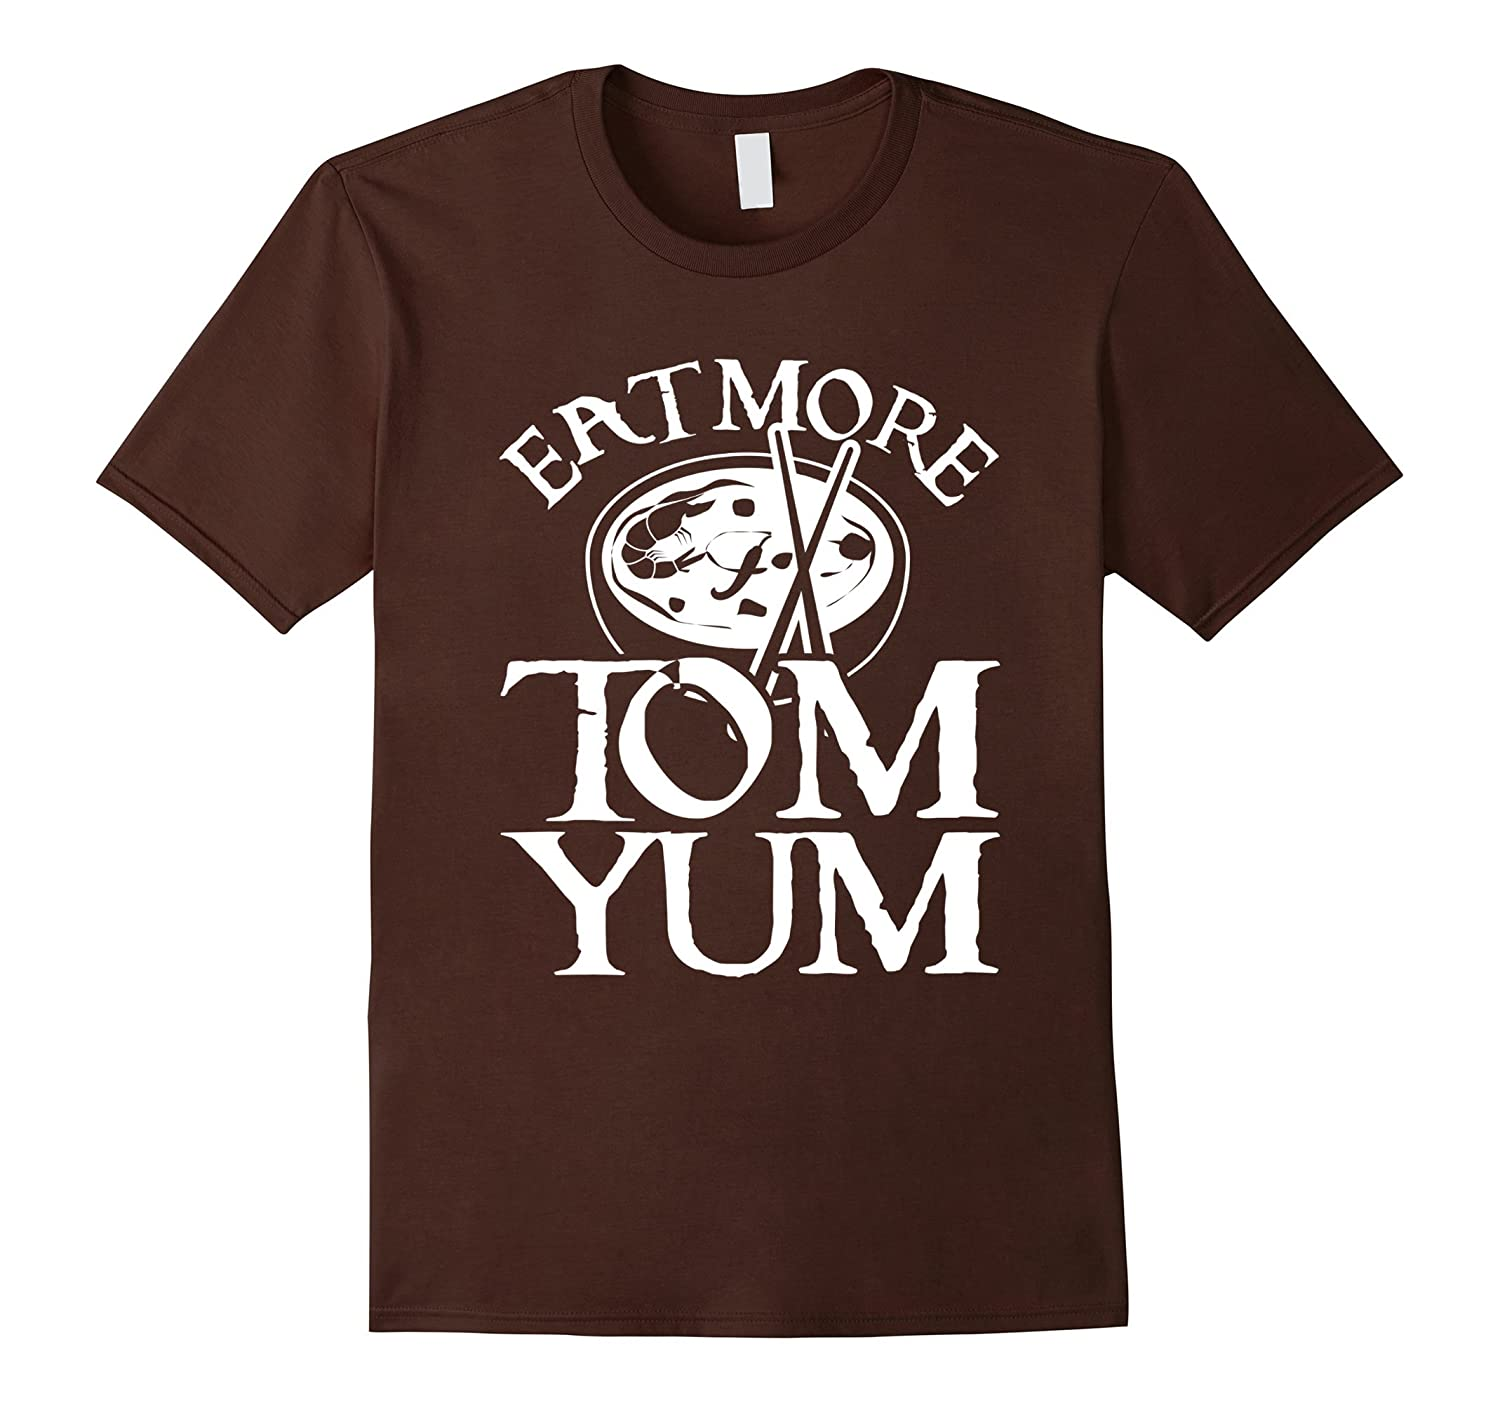 Eat More Tom Yum  Eat More TomYum T-Shirt-TD